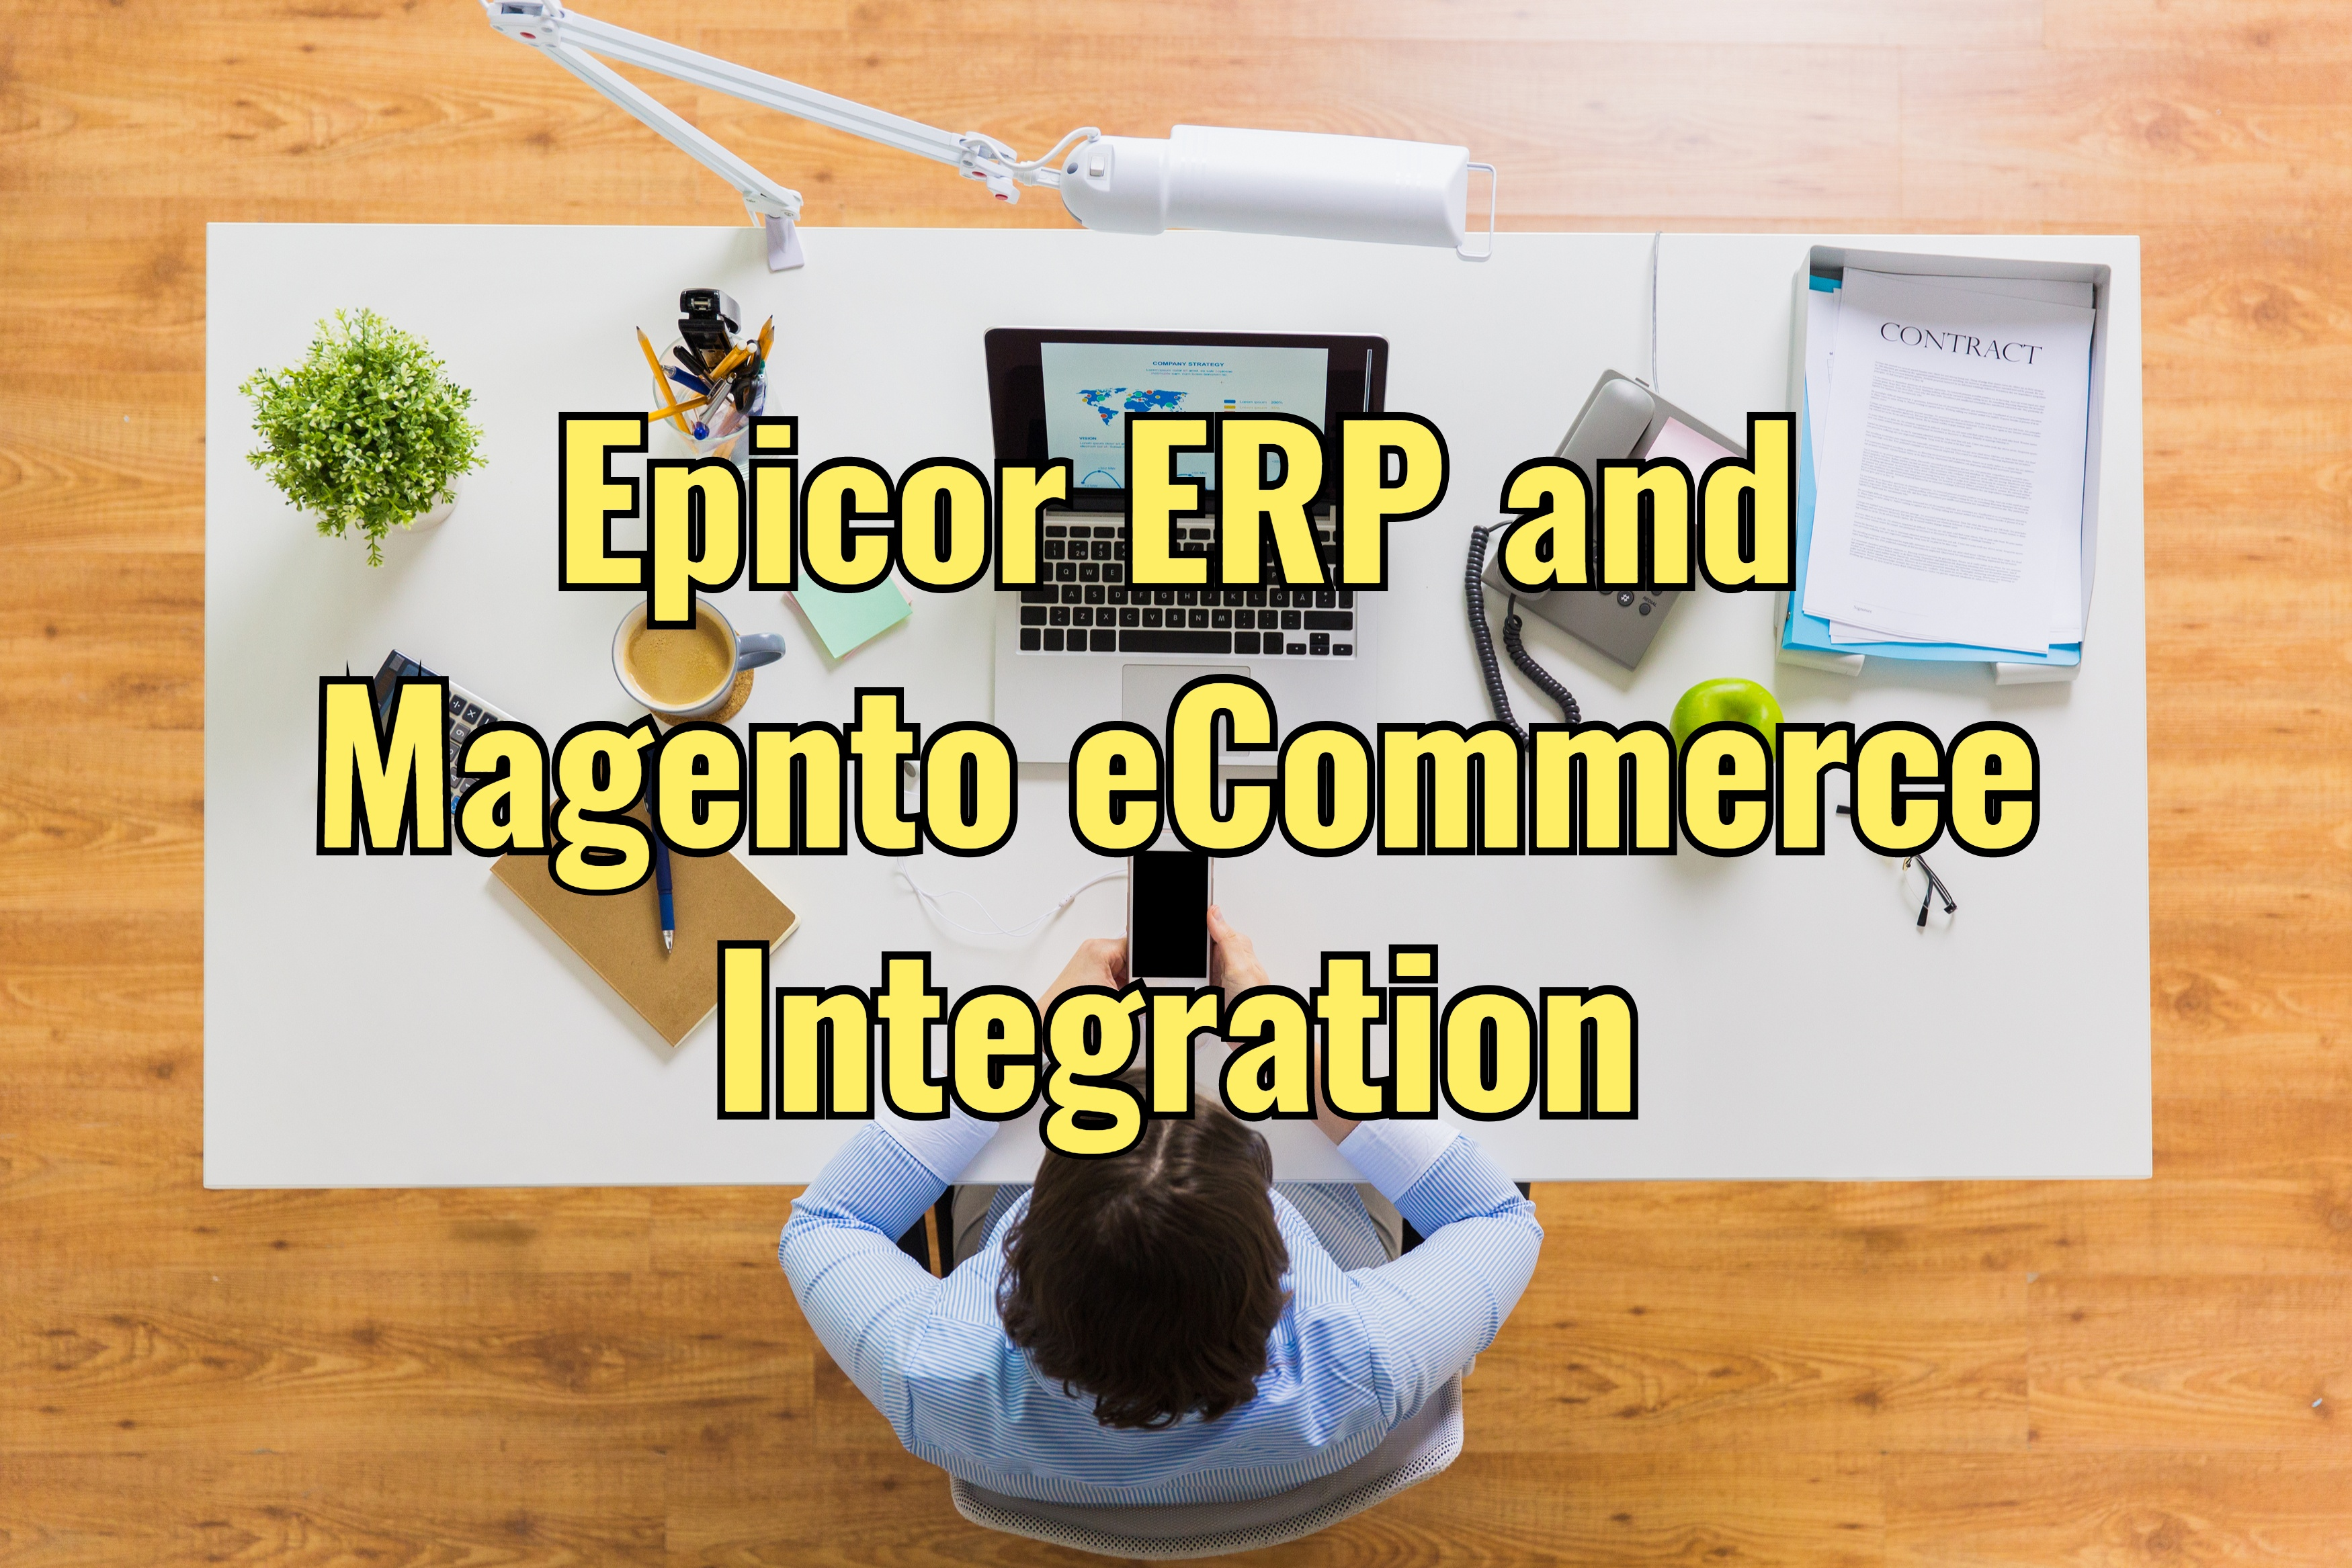 Tips to Successfully Integrate Epicor ERP and Magento eCommerce